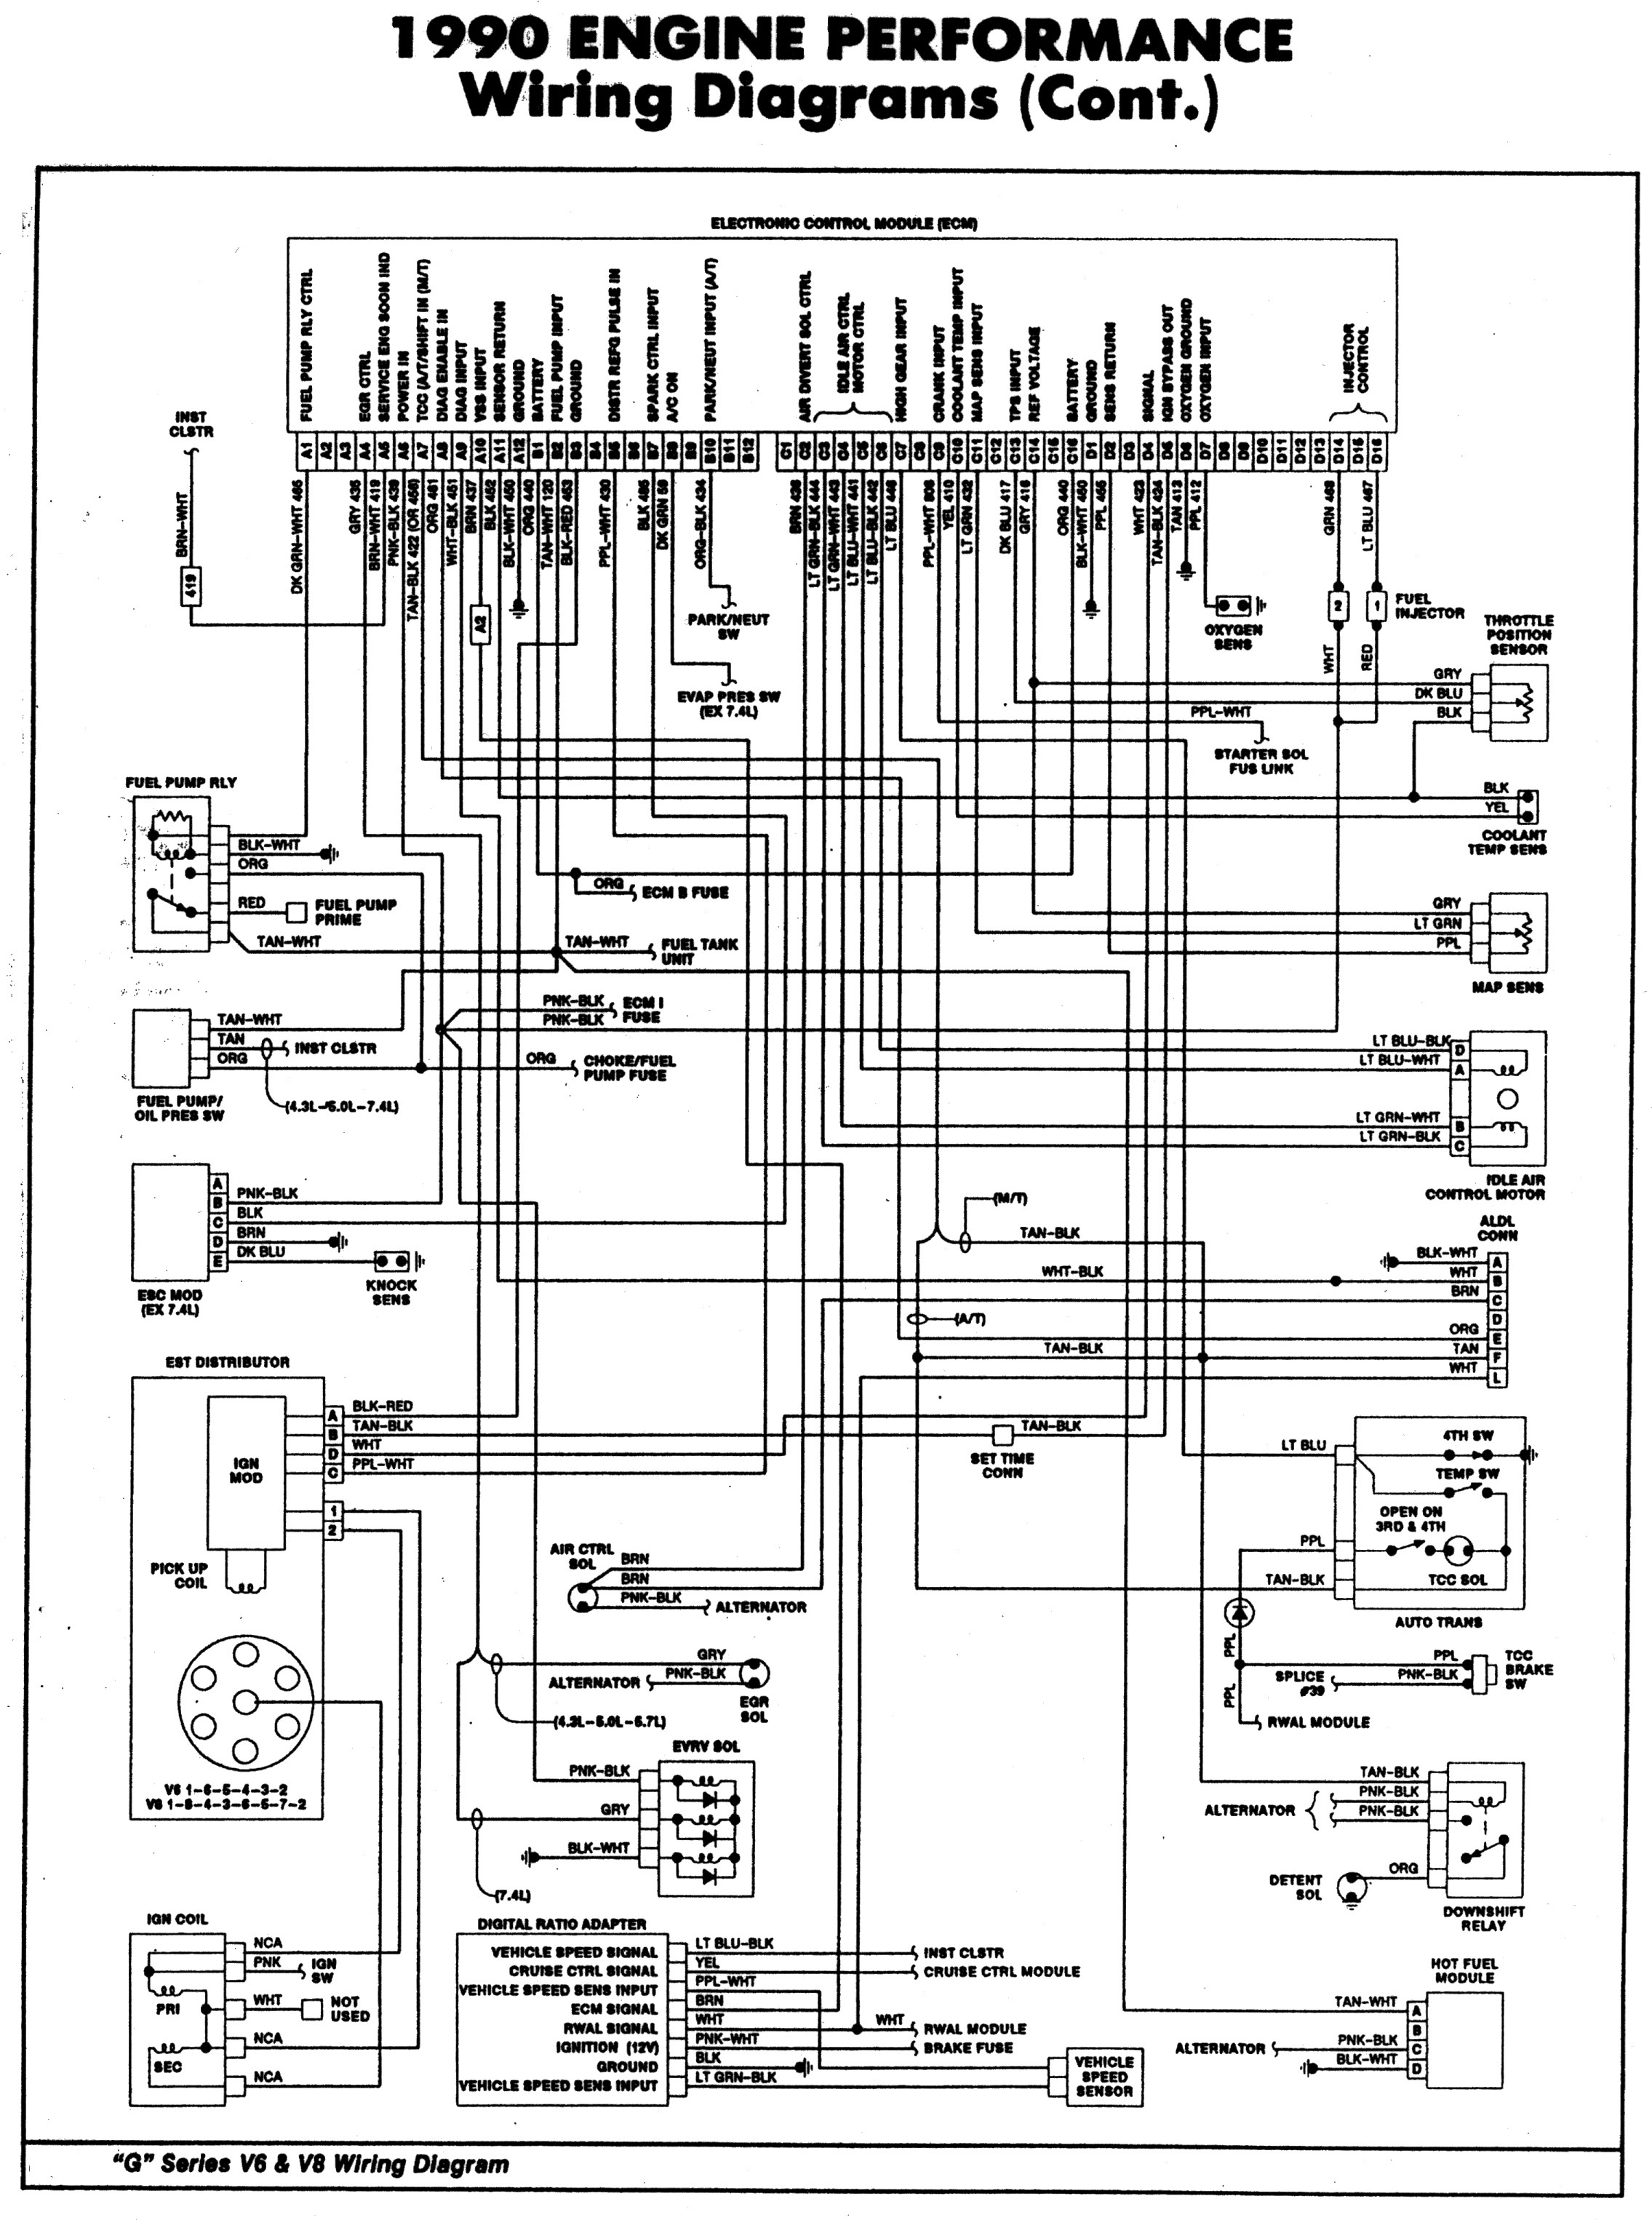 medium resolution of ignitiondiagram 1990 chevy suburban tbi 350 installation land interior wiring diagram for 1990 suburban